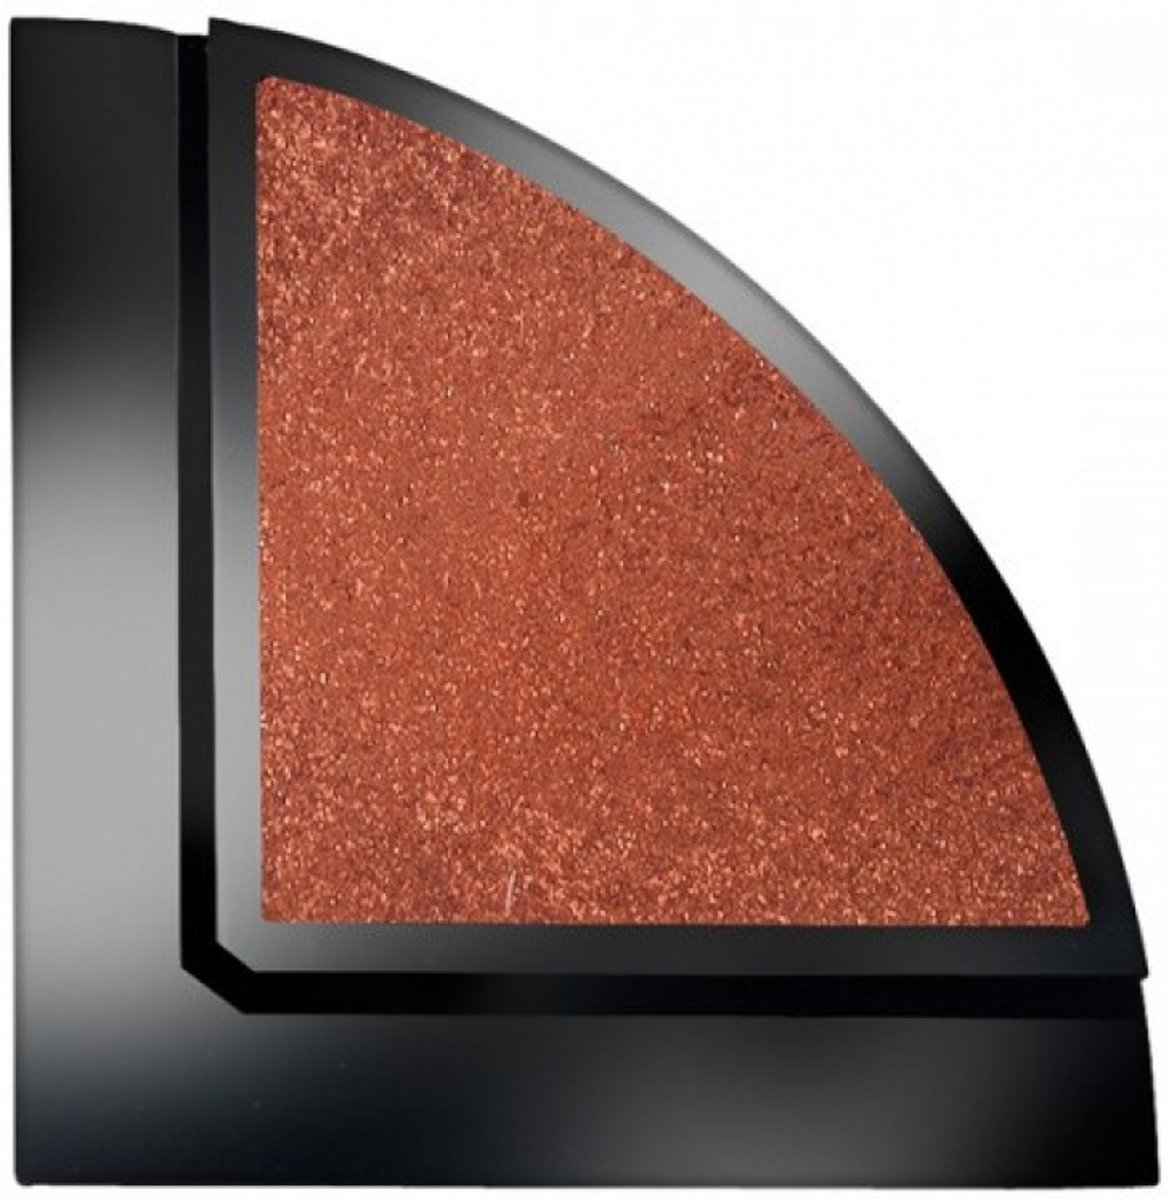 Sans Soucis Eyeshadow Re-fill Oogschaduw 1 st - 110 - Copper Netallic